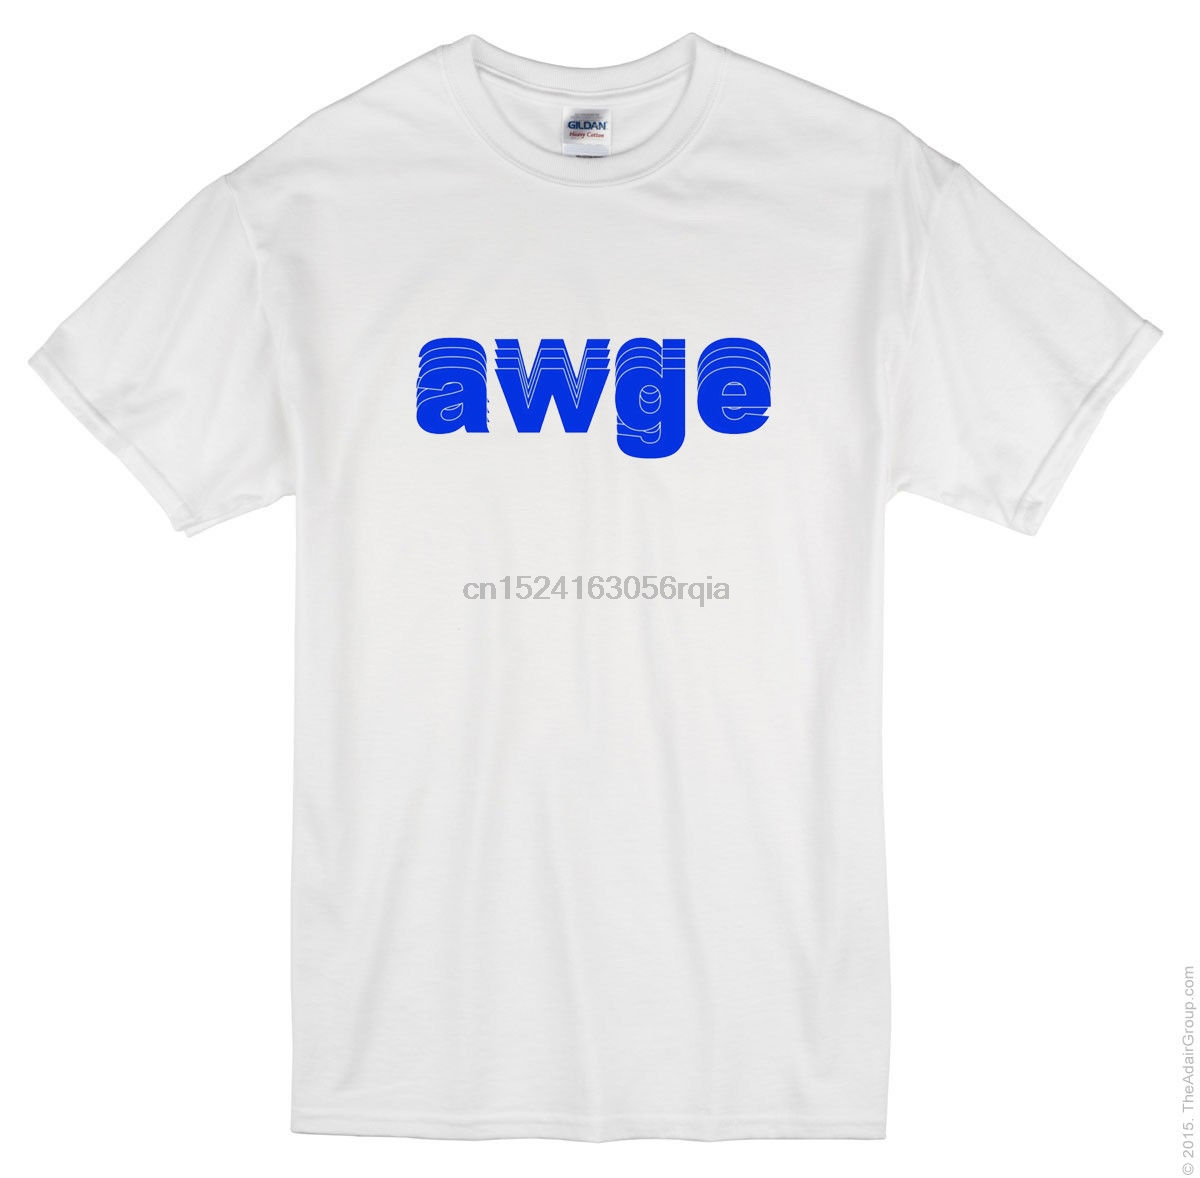 New Awge Blue Logo Not Or Nothing 2020 T Shirt White T Shirt Front Only image